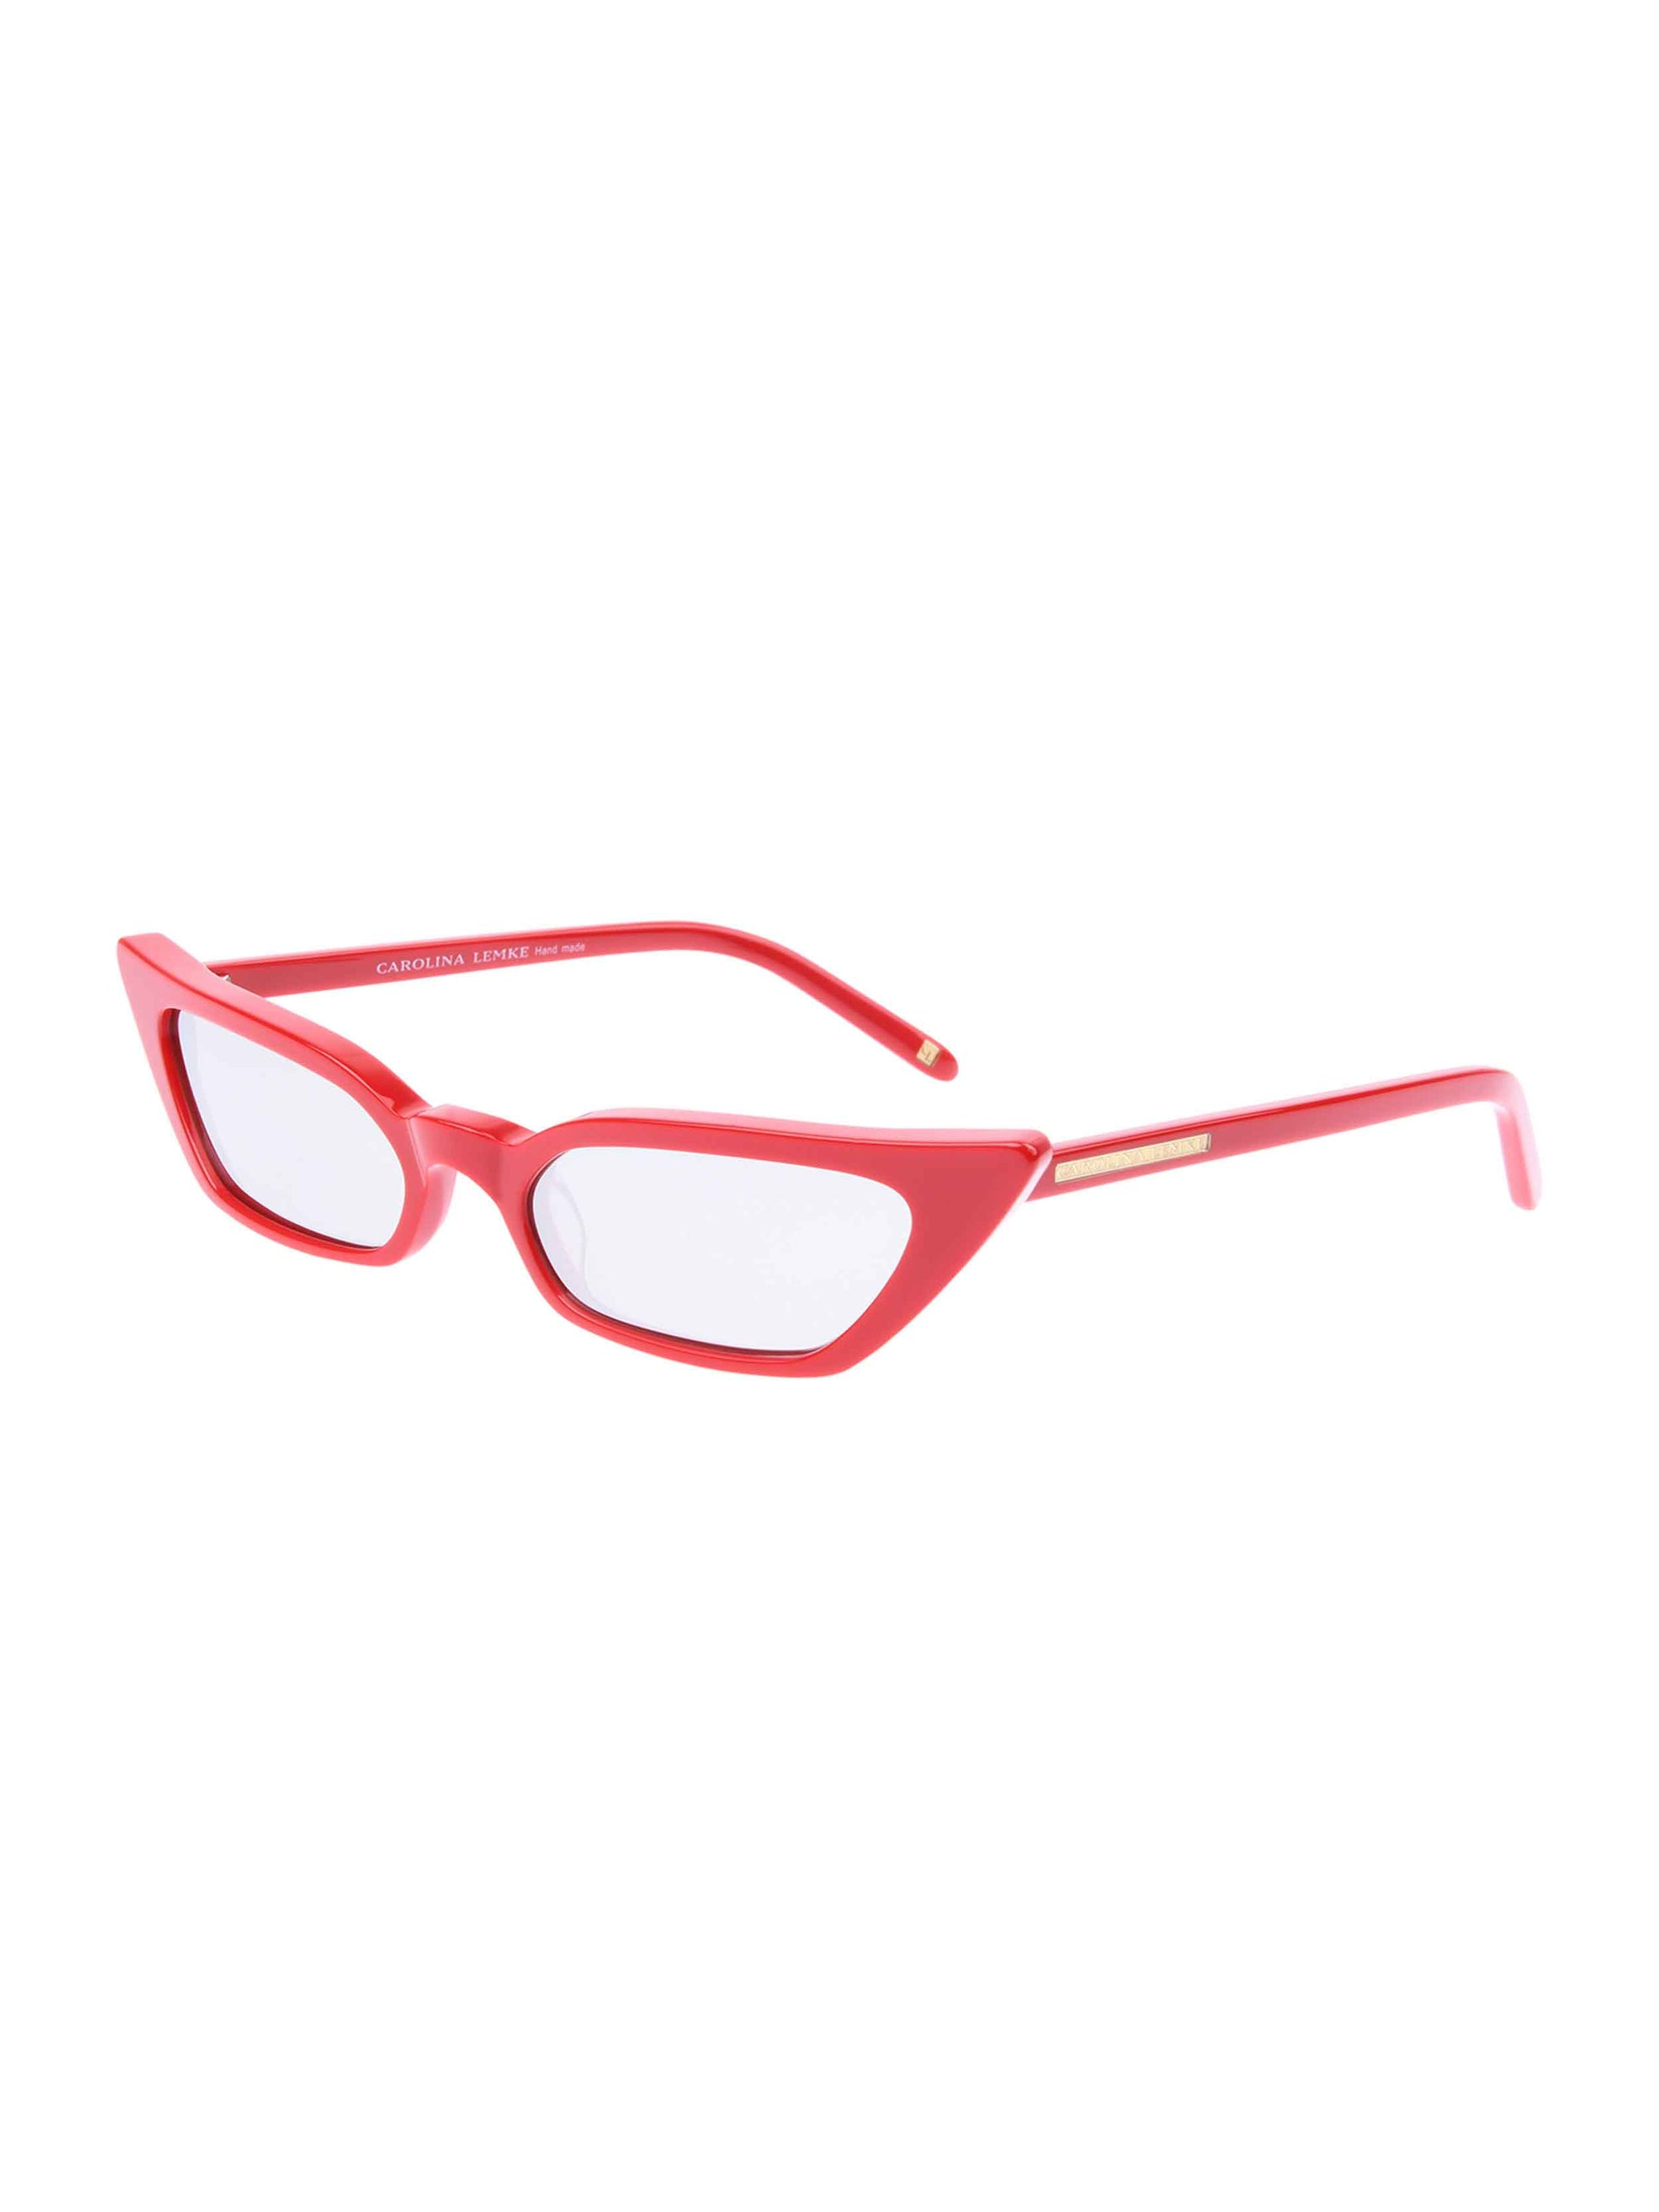 Lentes Carolina Lemke CL7640 03